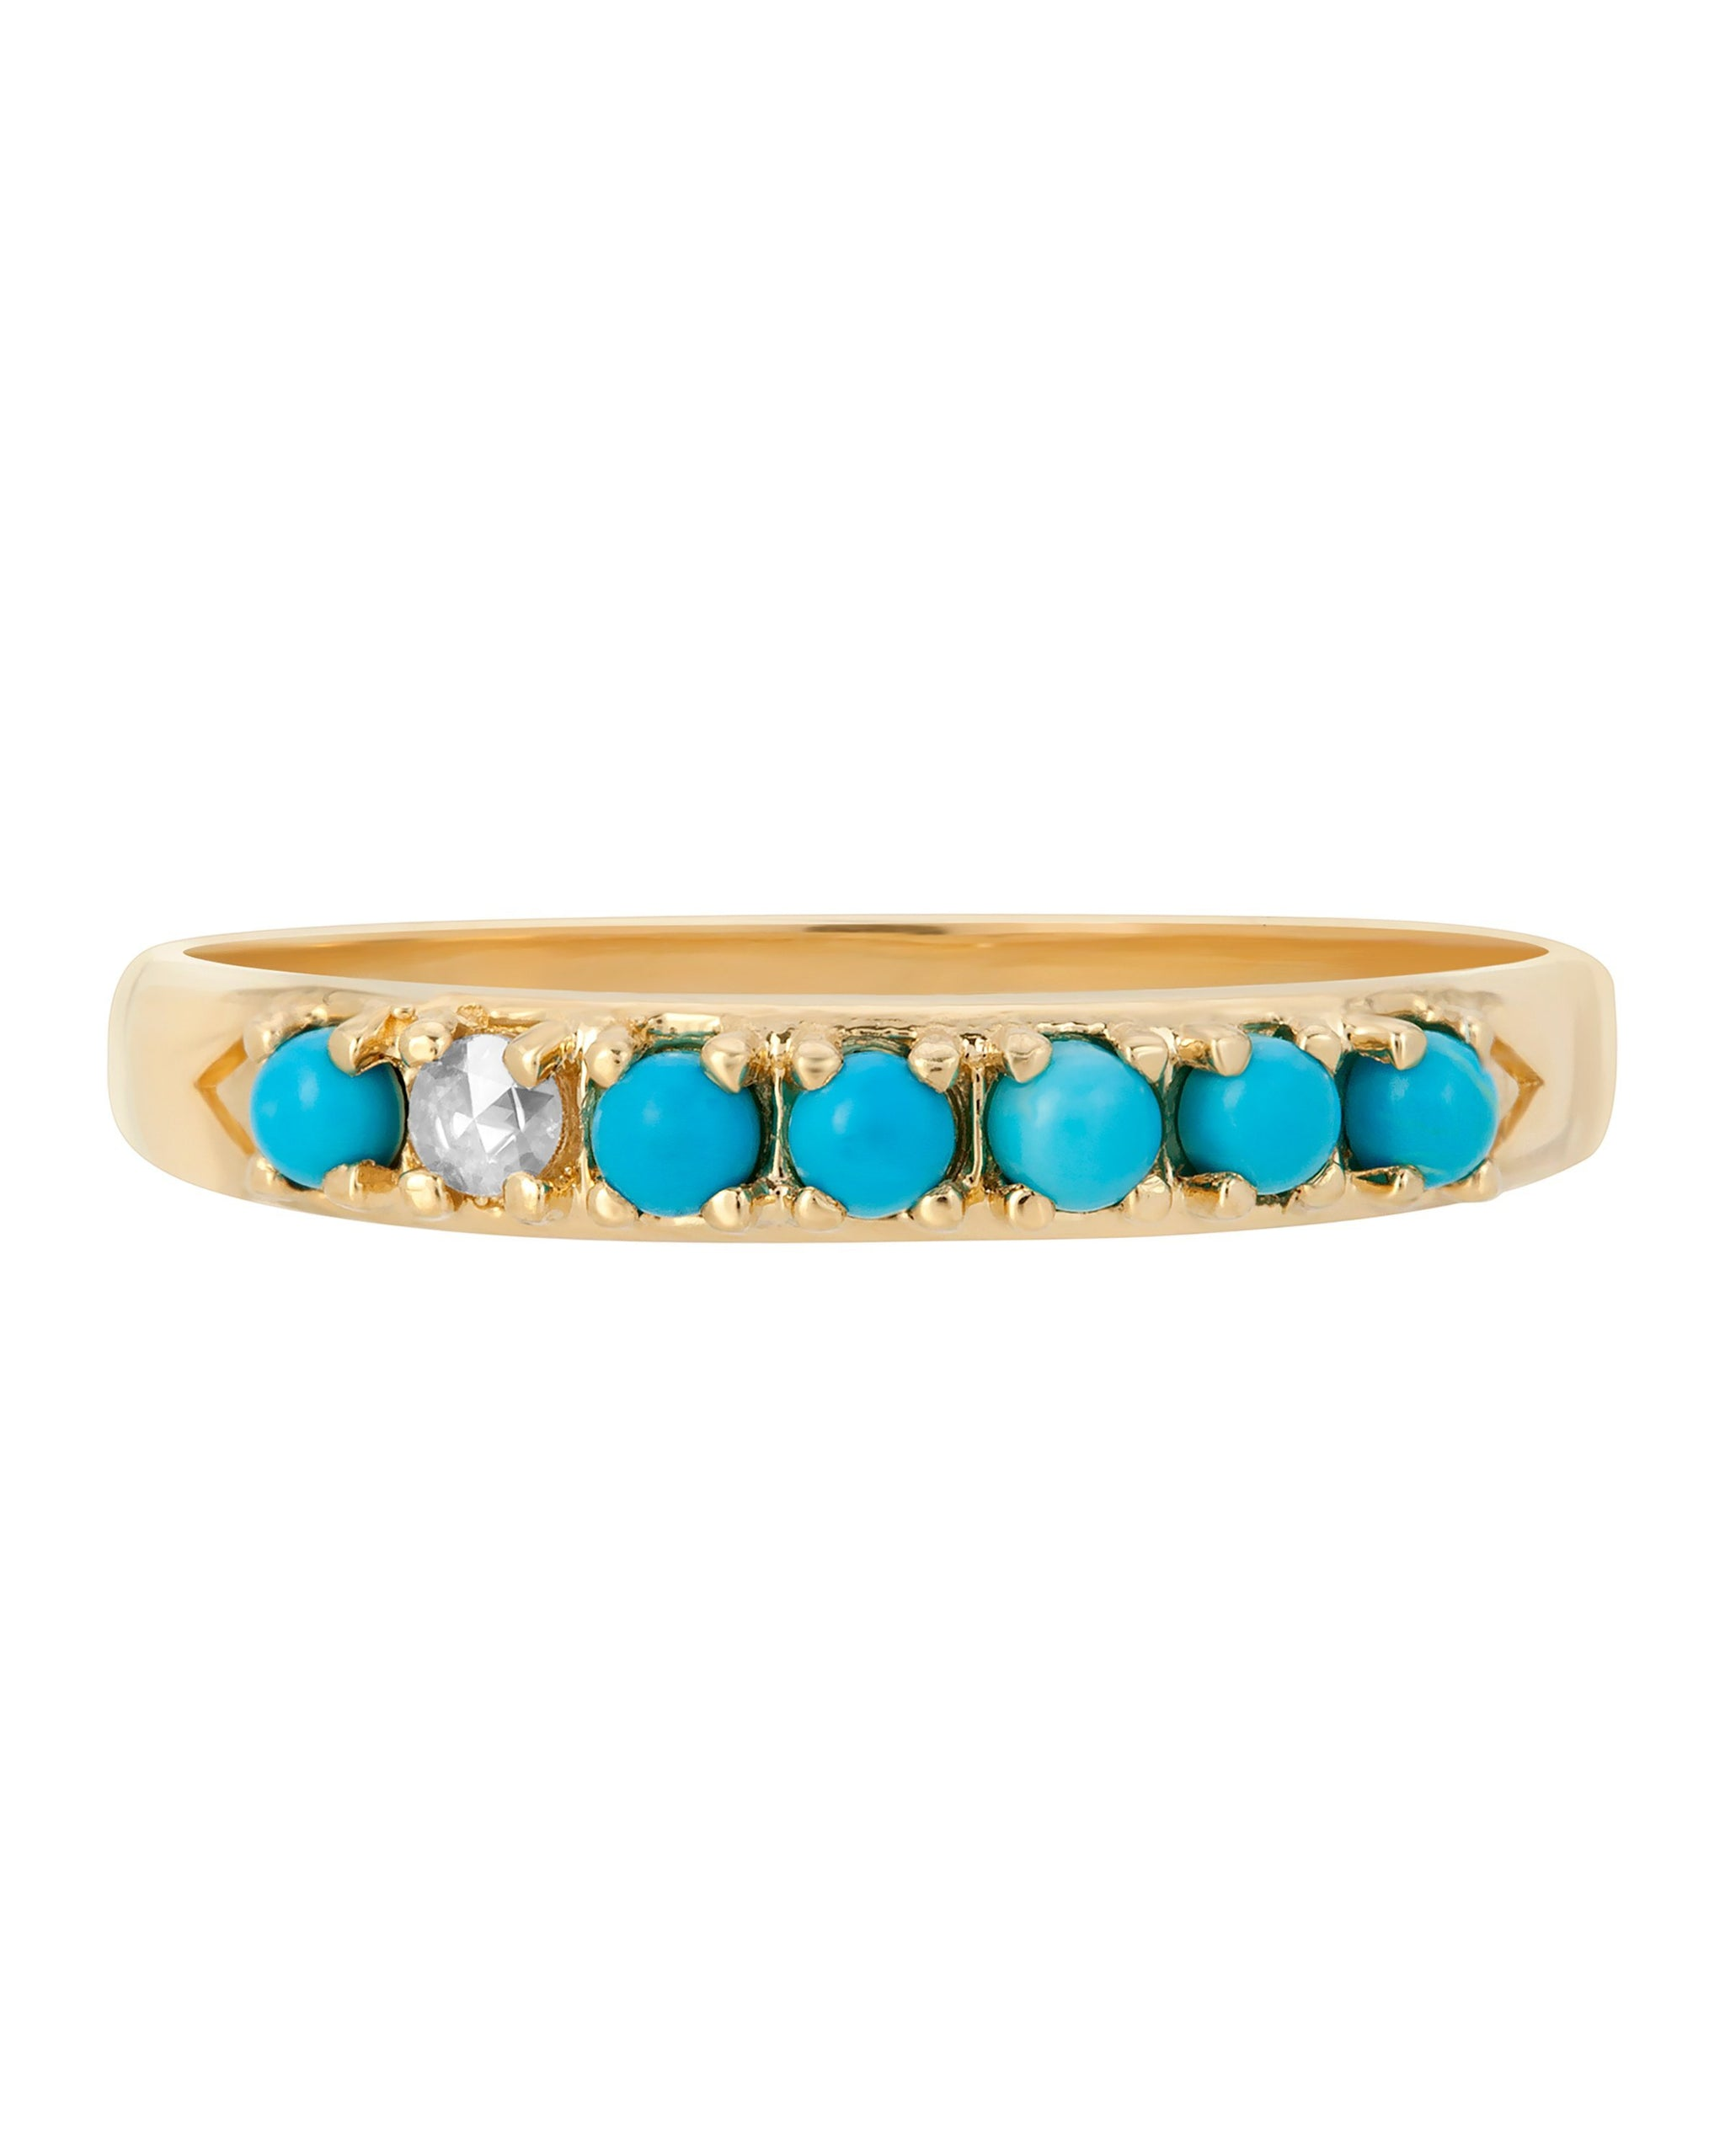 Wylde Ring, 14k yellow gold seven stone band with six sleeping beauty stones and one white diamond, handmade by Turquoise + Tobacco